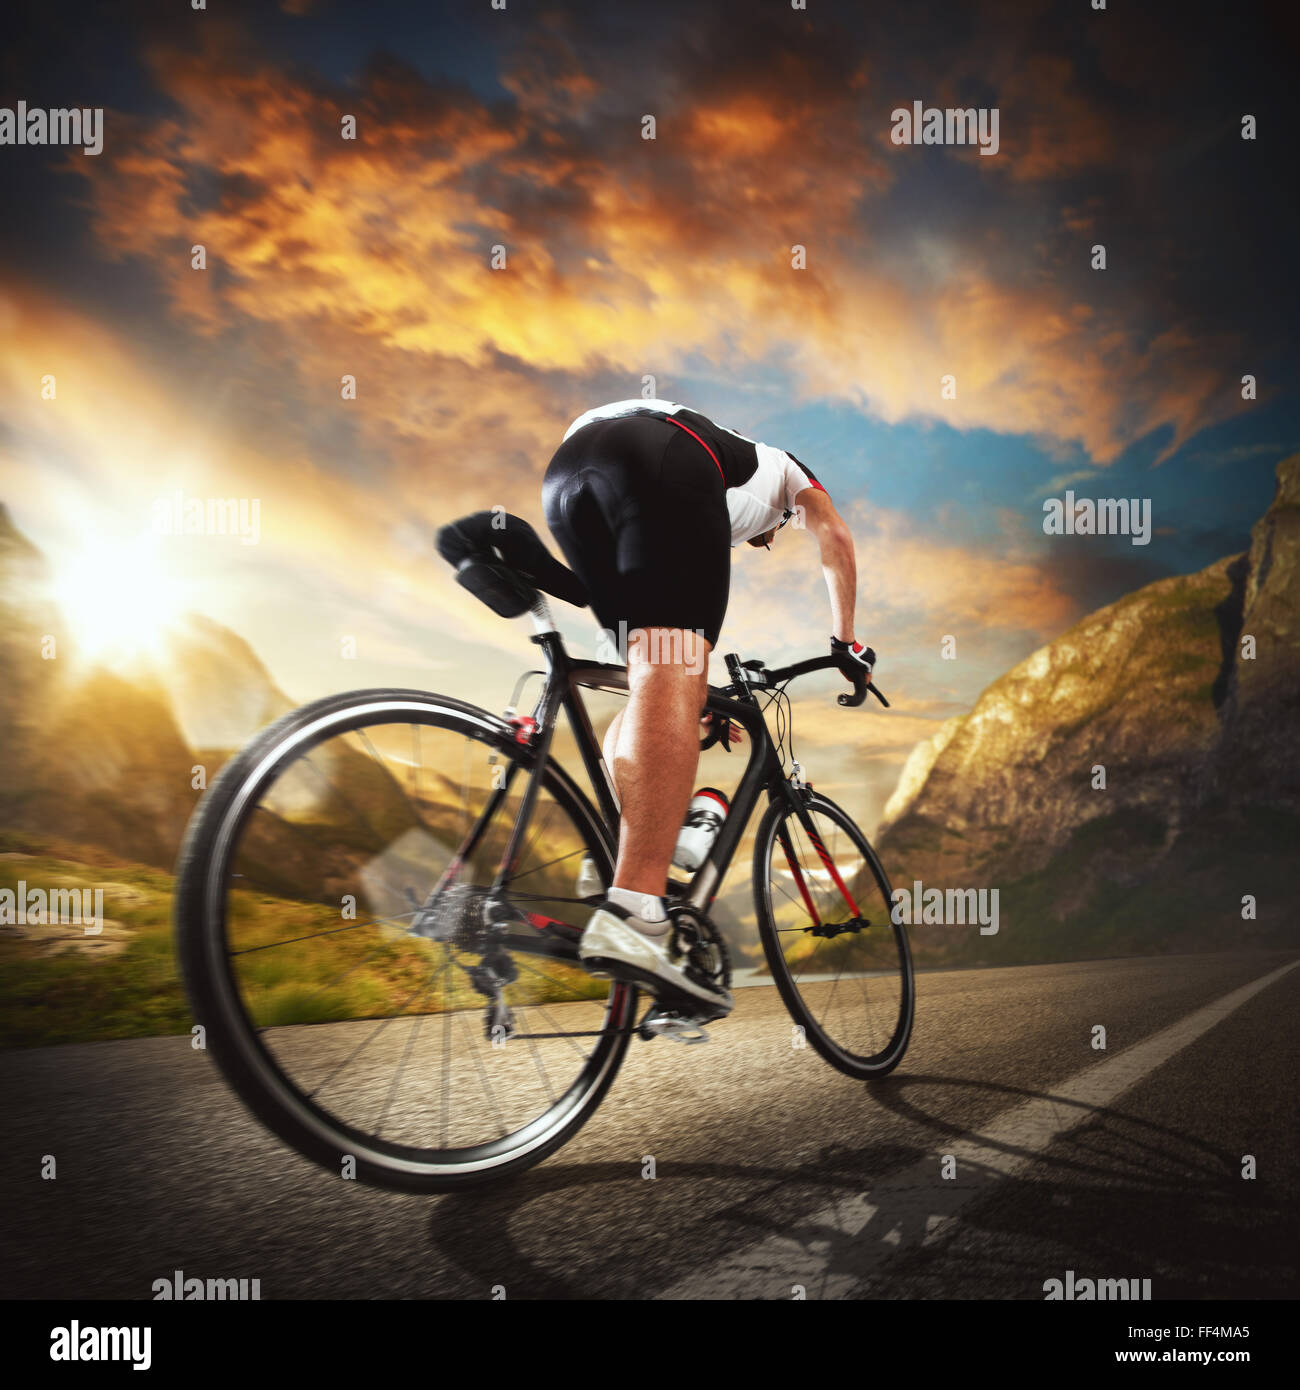 Riding between  the mountains - Stock Image